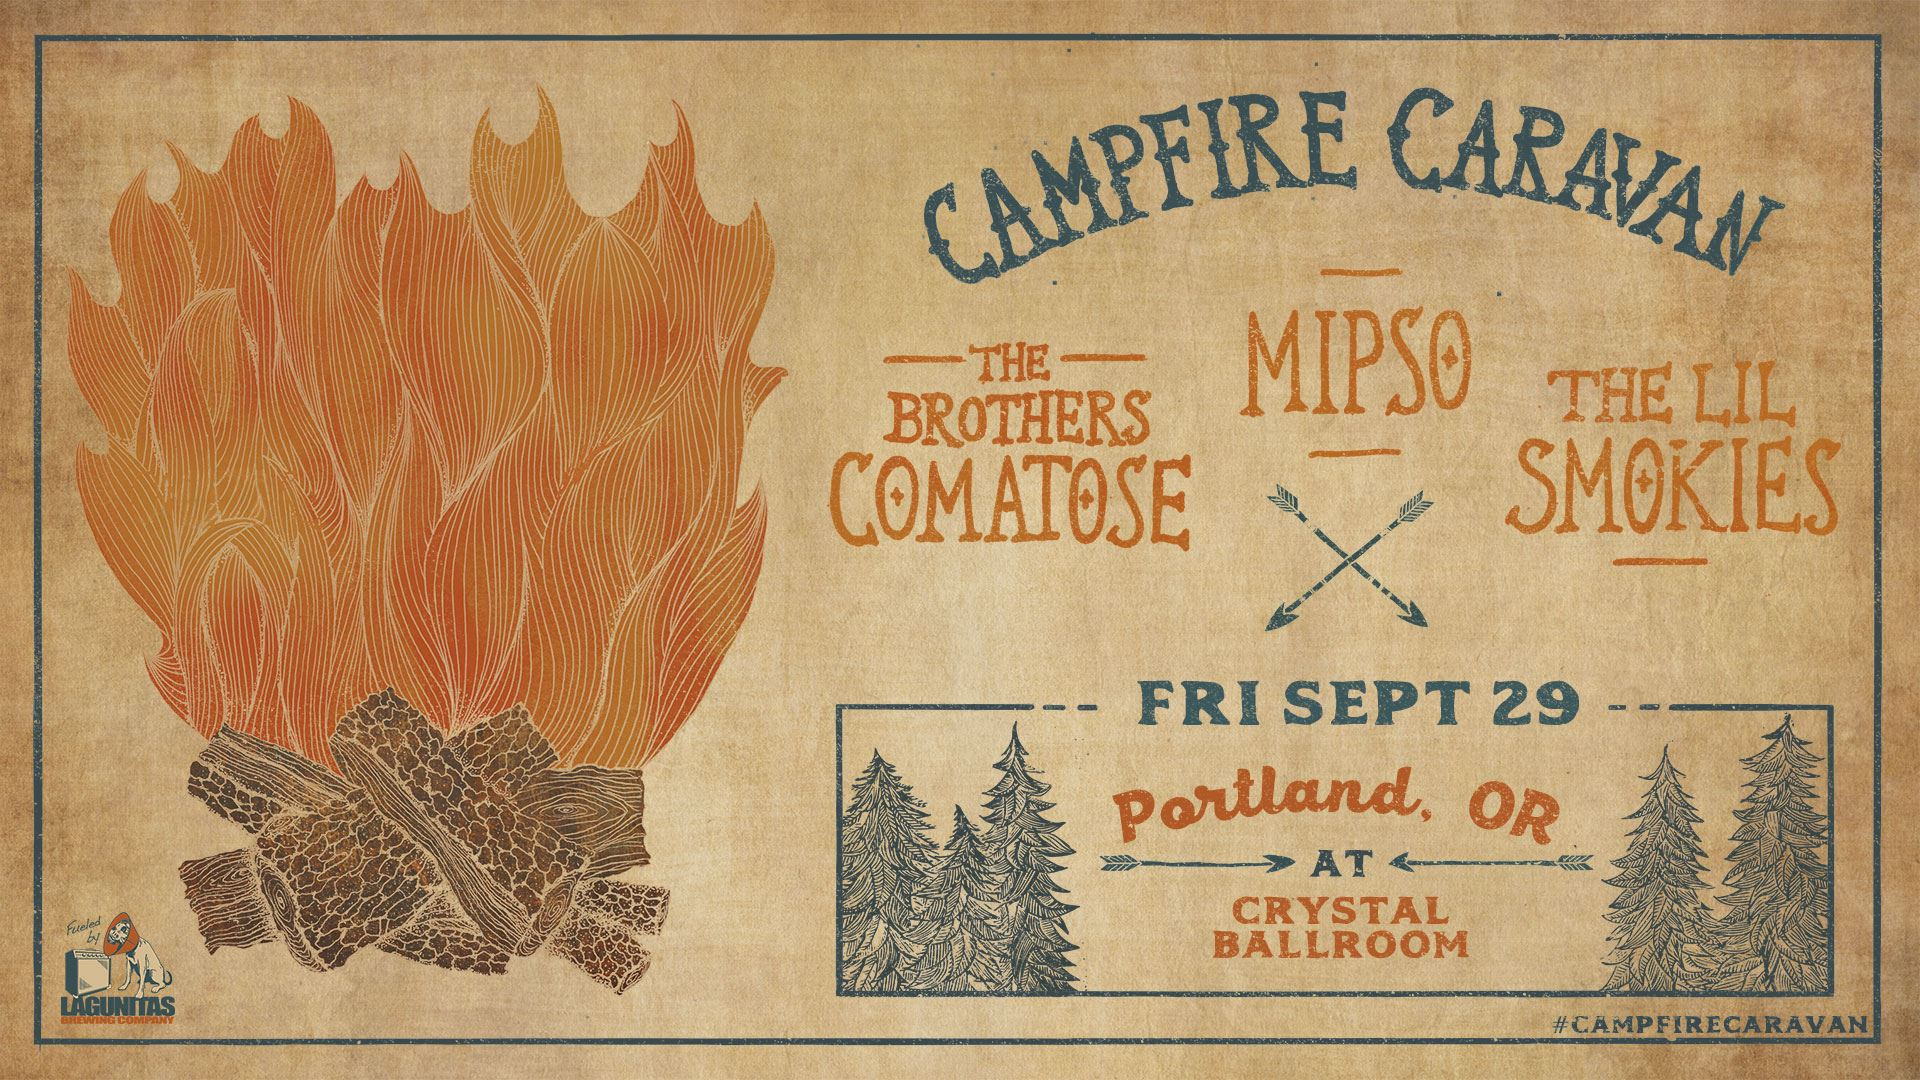 GIVEAWAY - Win tickets to Campfire Caravan at the Crystal Ballroom (Portland, OR)